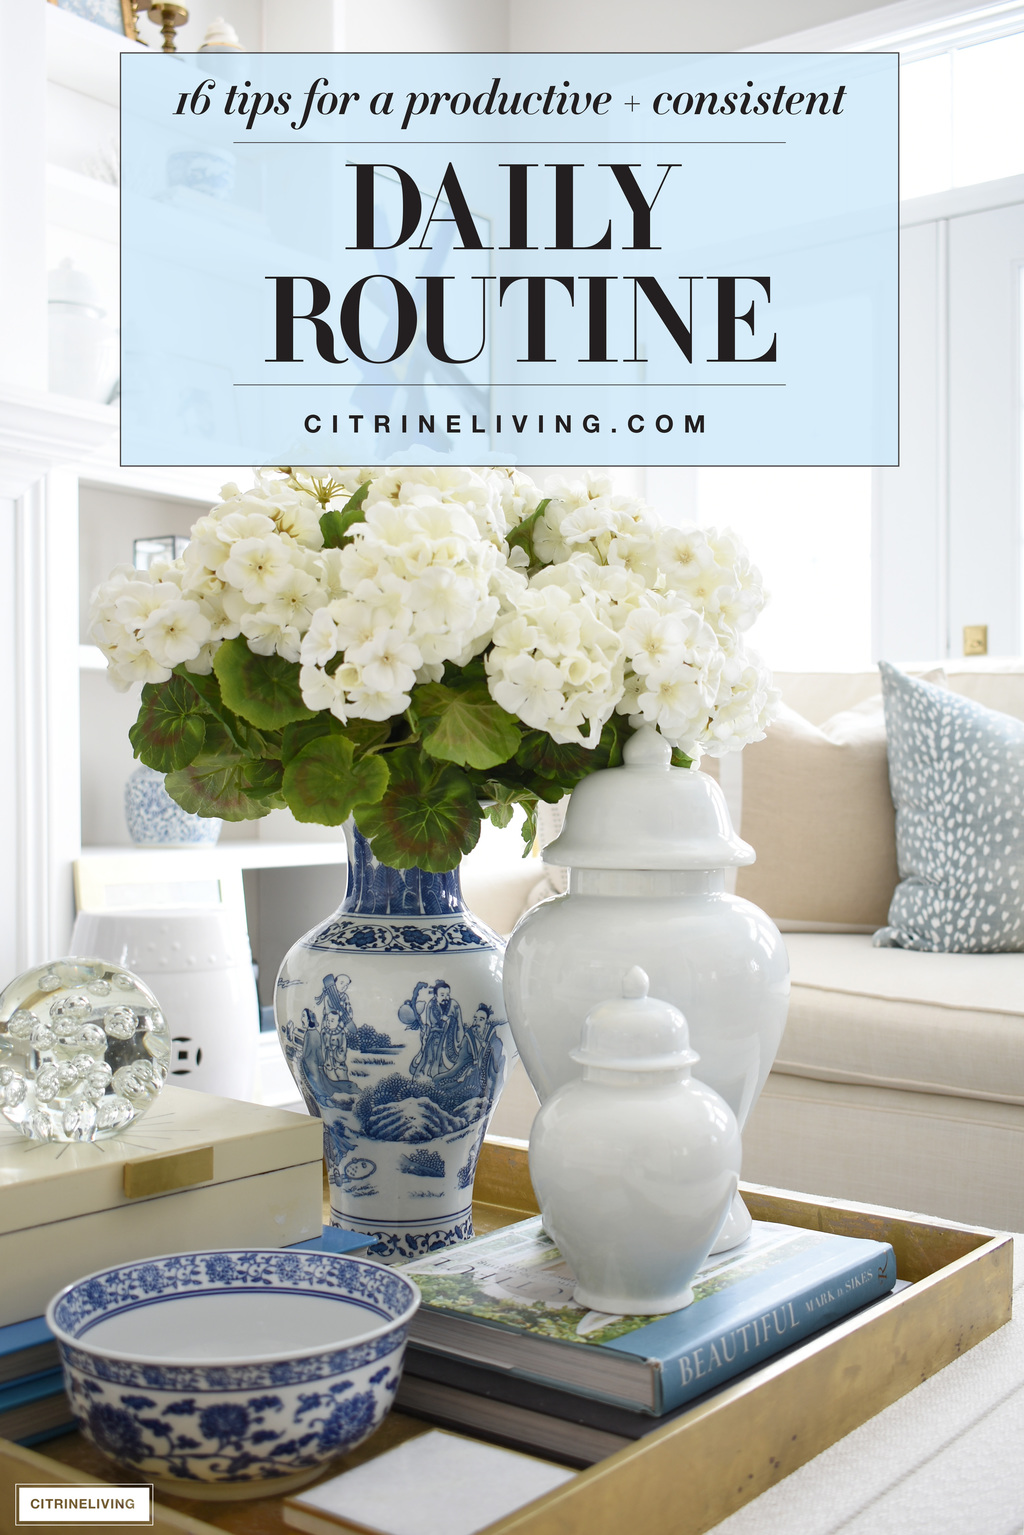 Beautiful blue and white vase with faux white floral arrangement paired with pale blue ginger jars.